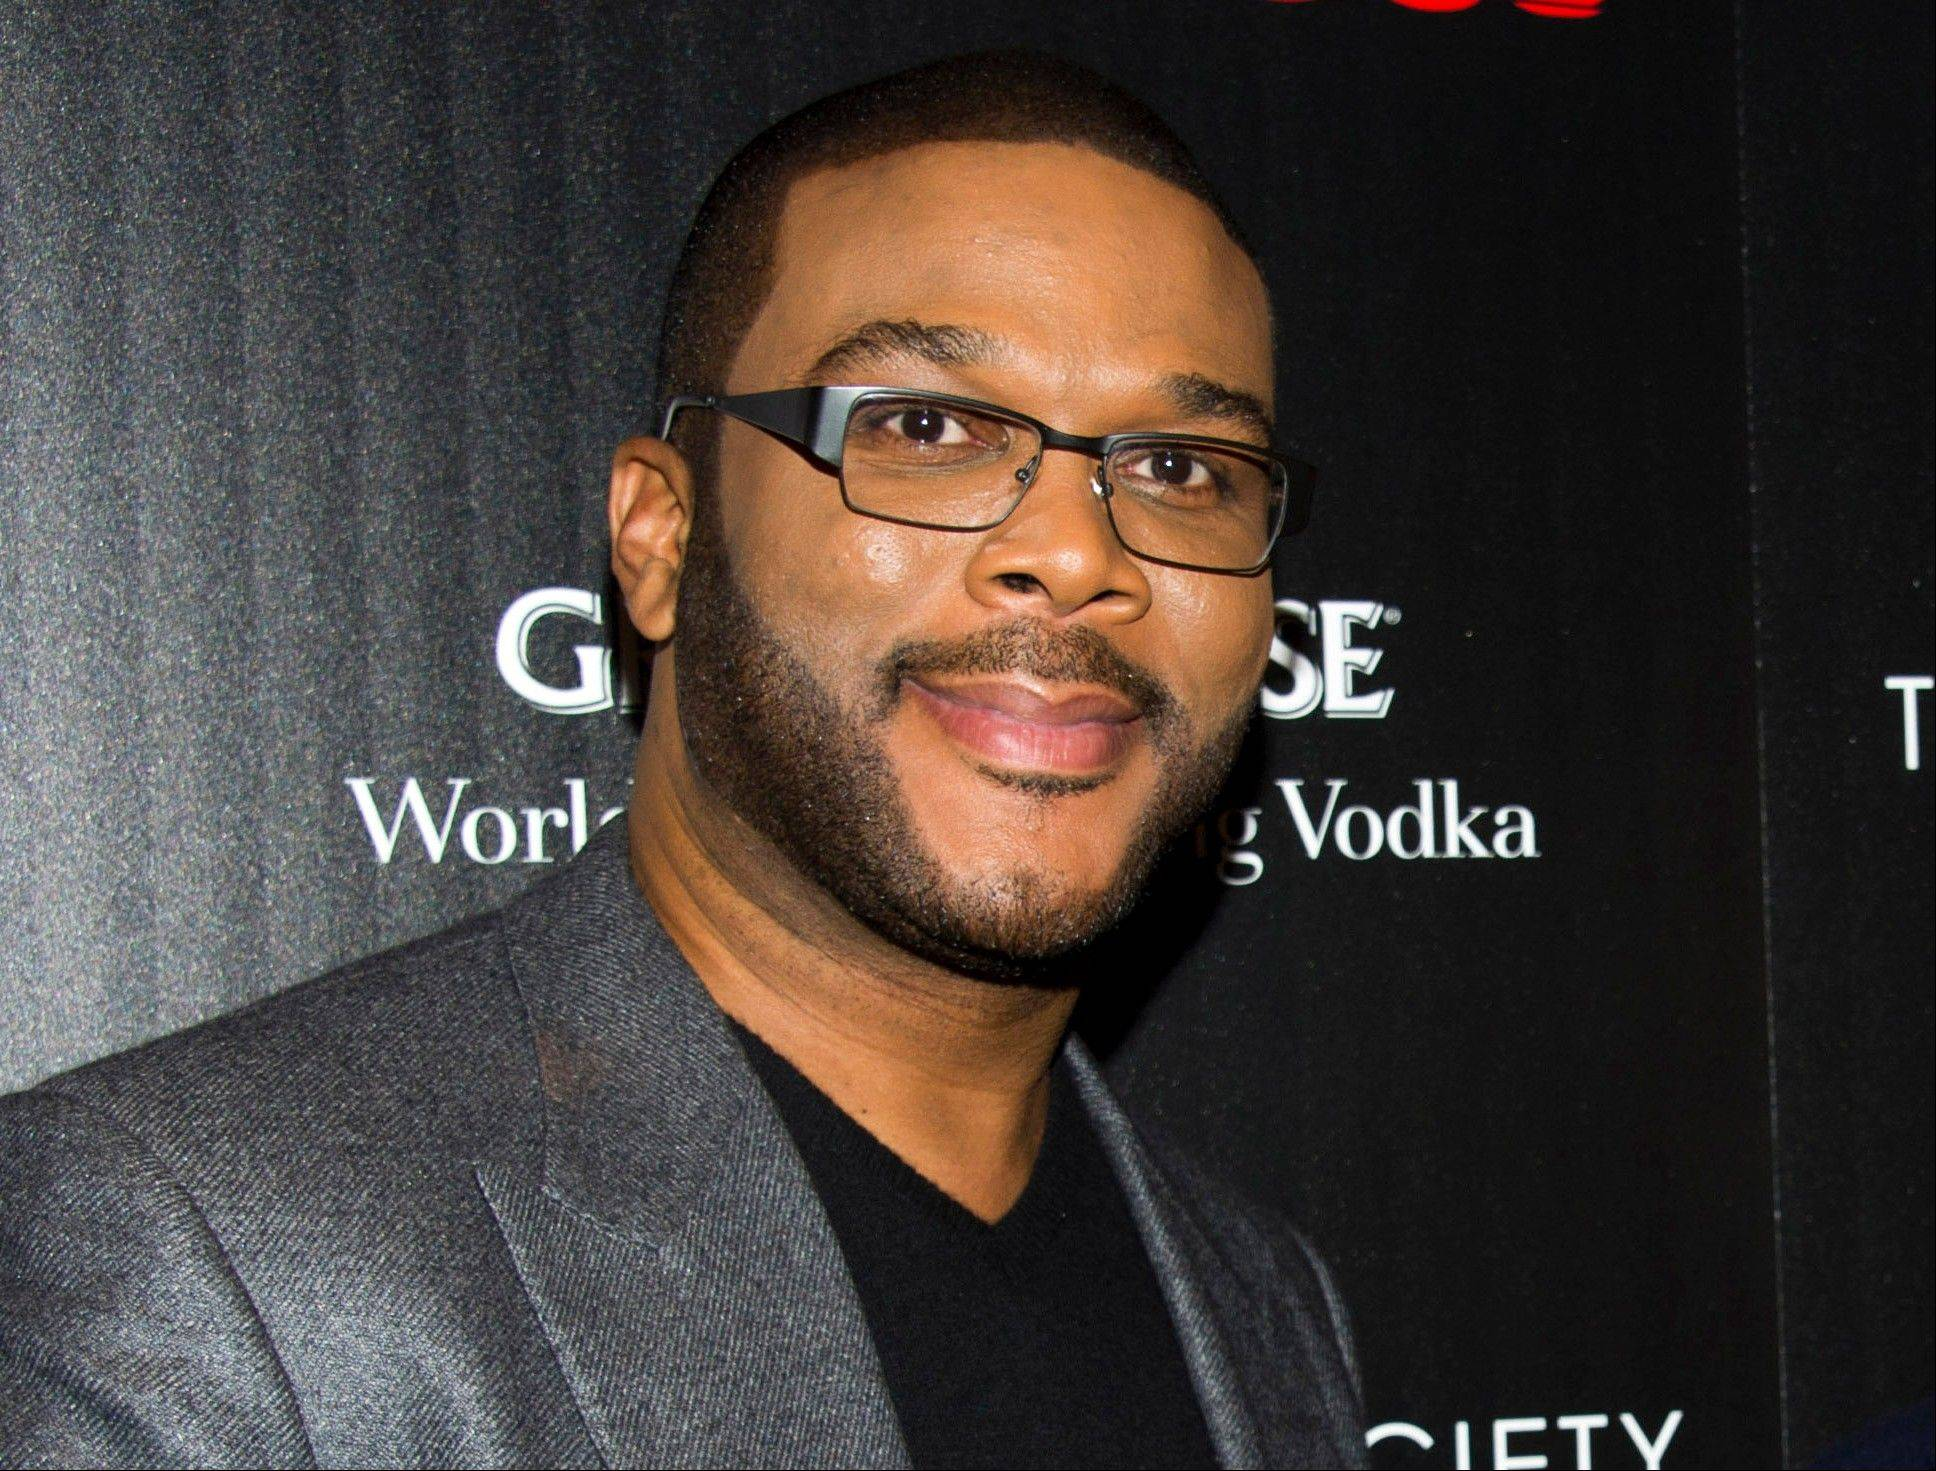 Tyler Perry says he�s glad he made time for a role in director David Fincher�s �Gone Girl� movie adaptation. Based on the best-selling novel by Chicago�s Gillian Flynn, �Gone Girl� is about a man who comes under suspicion after his wife goes missing. It stars Ben Affleck and Rosamund Pike. Perry plays Affleck�s character�s attorney.